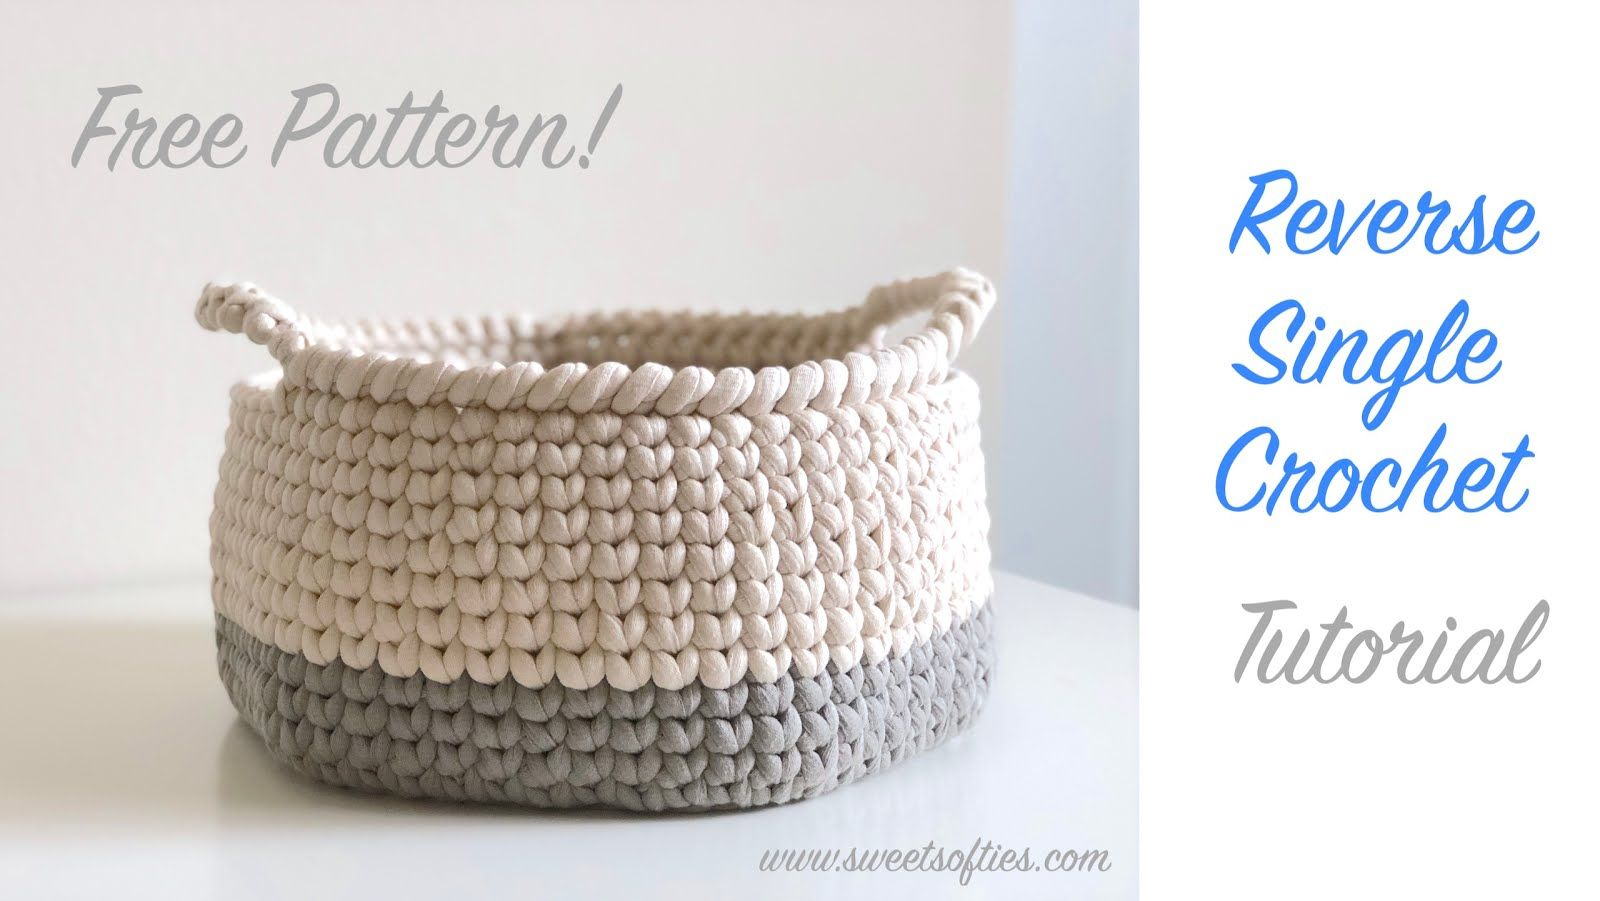 How to Crochet the Reverse Single Crochet Stitch [Video Tutorial ...